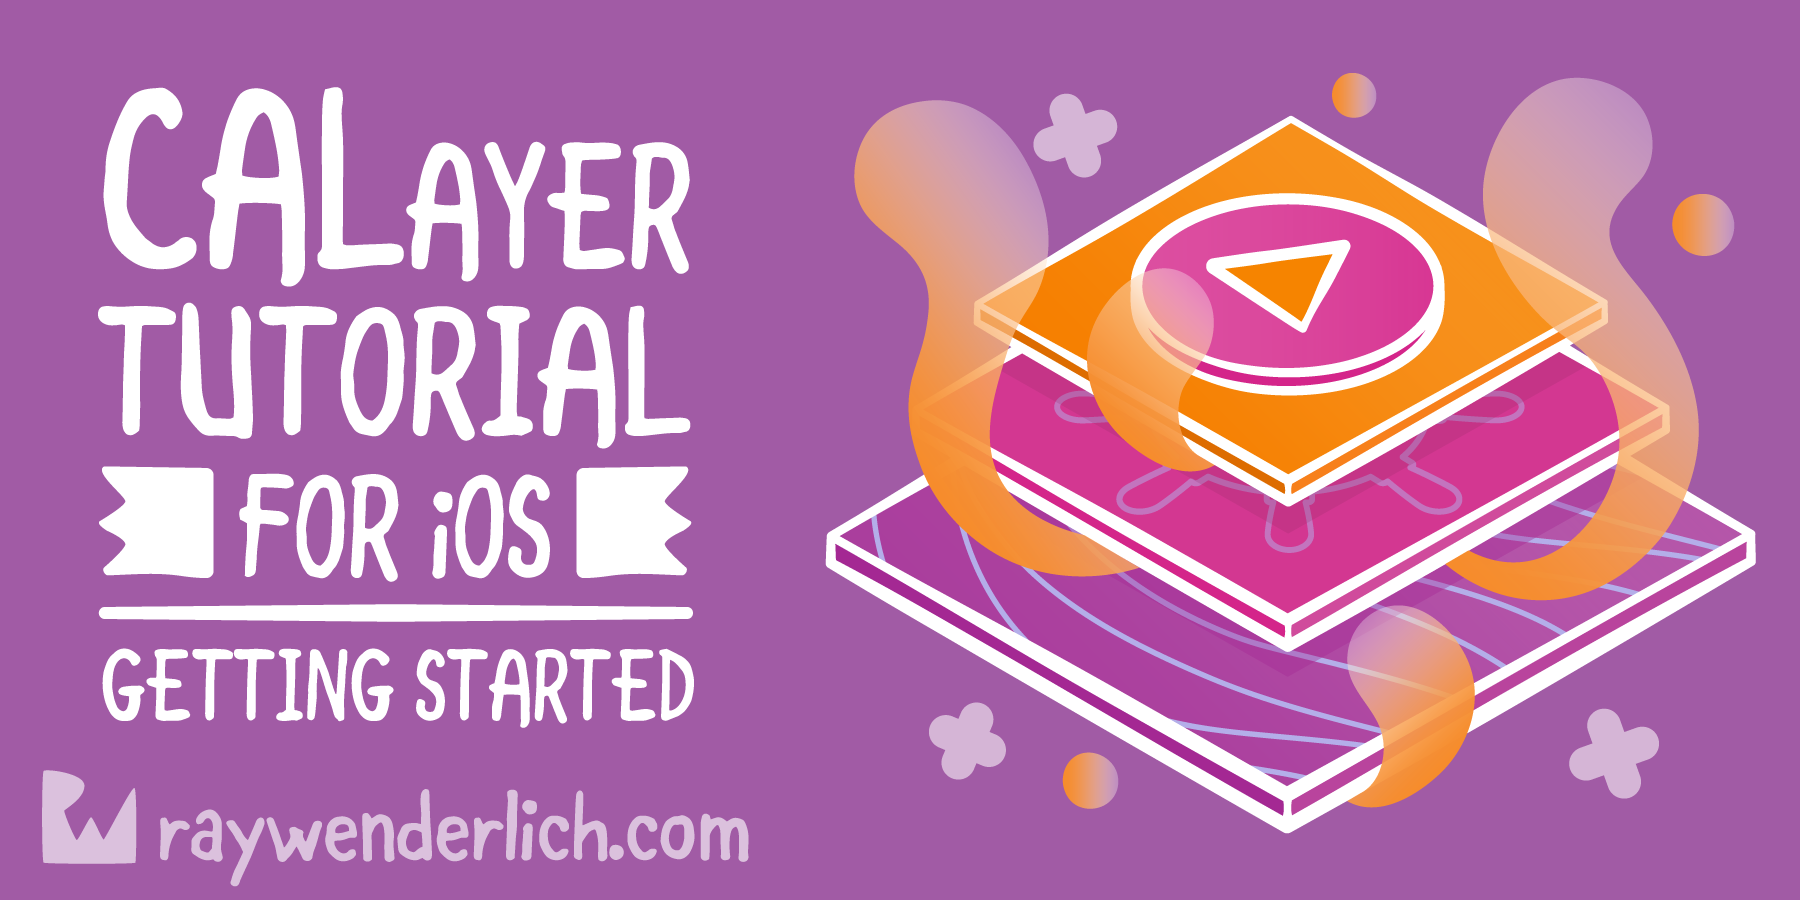 CALayer Tutorial for iOS: Getting Started [FREE]